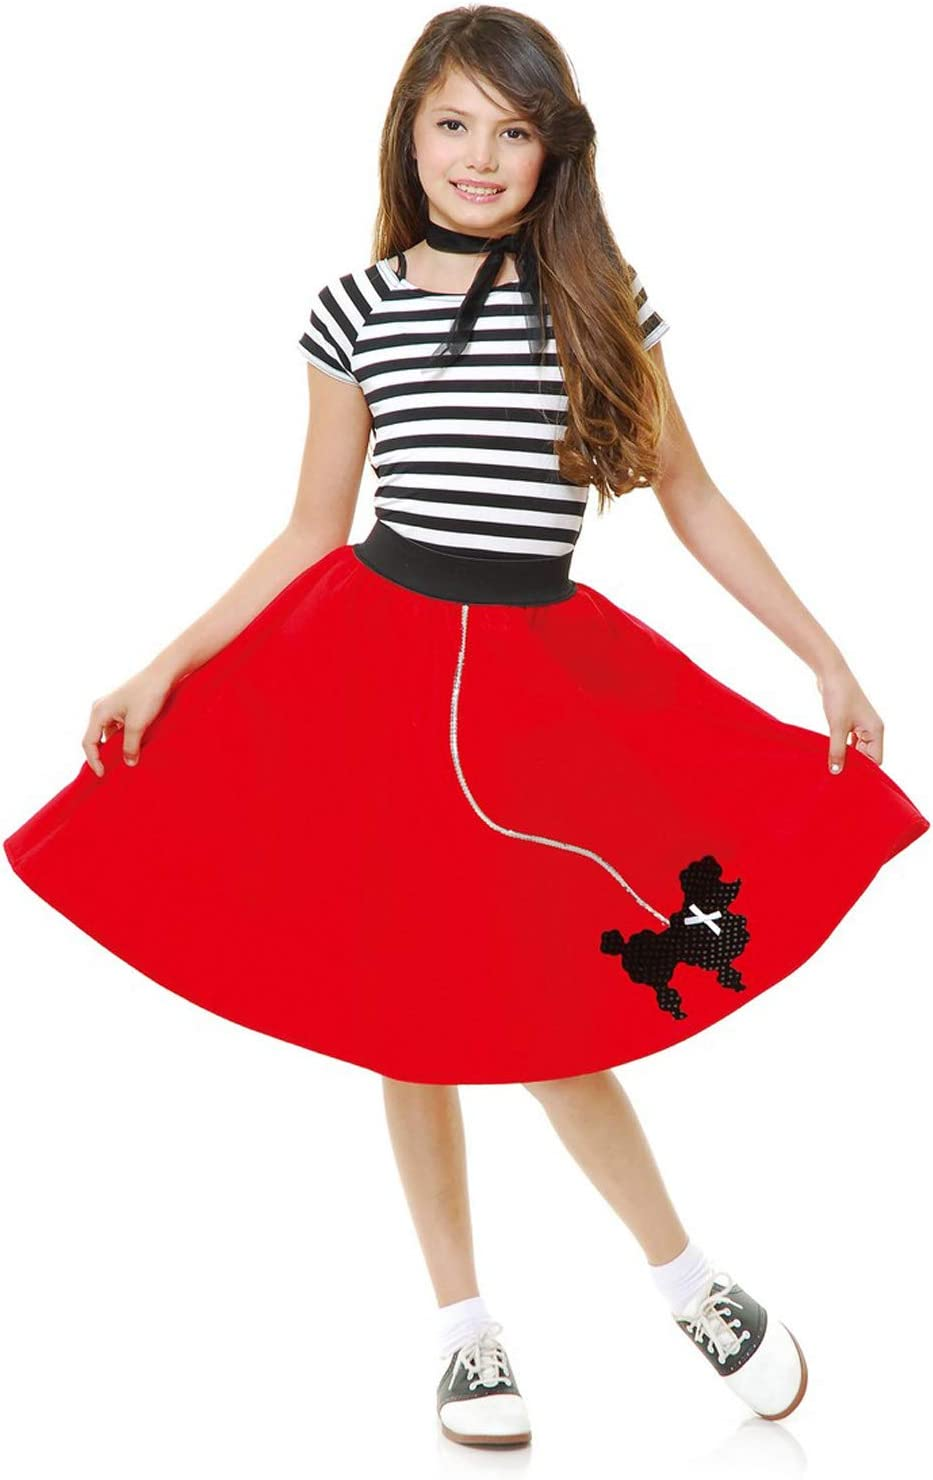 50S ROCK N ROLL RED SKIRT /& SCARF Age 5-8 girls childs kids fancy dress costume